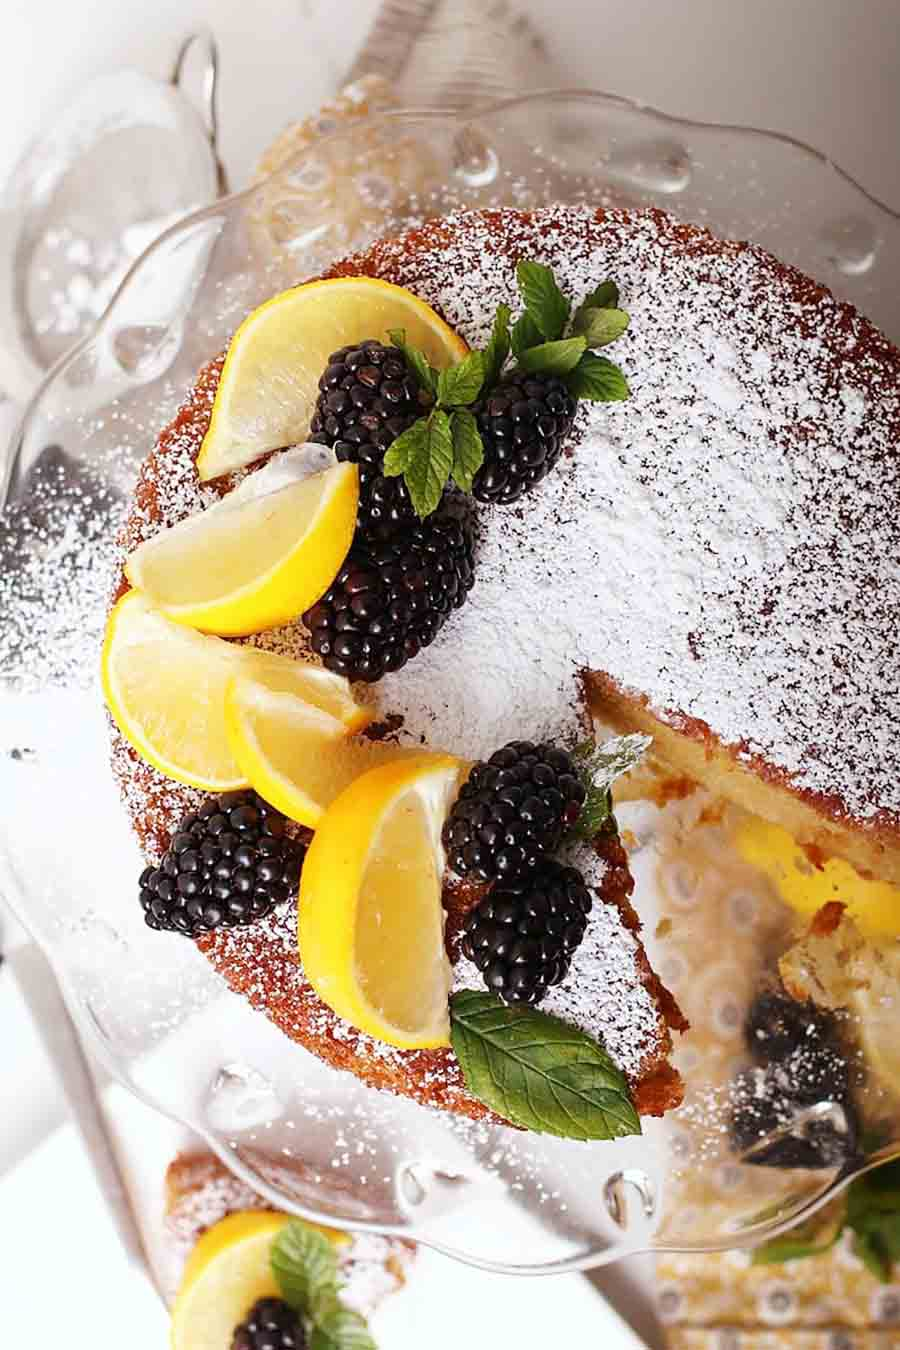 Overhead view of an olive oil cake with a slice missing that is decorated with fresh lemon wedges and blackberries with powdered sugar dusted on top.